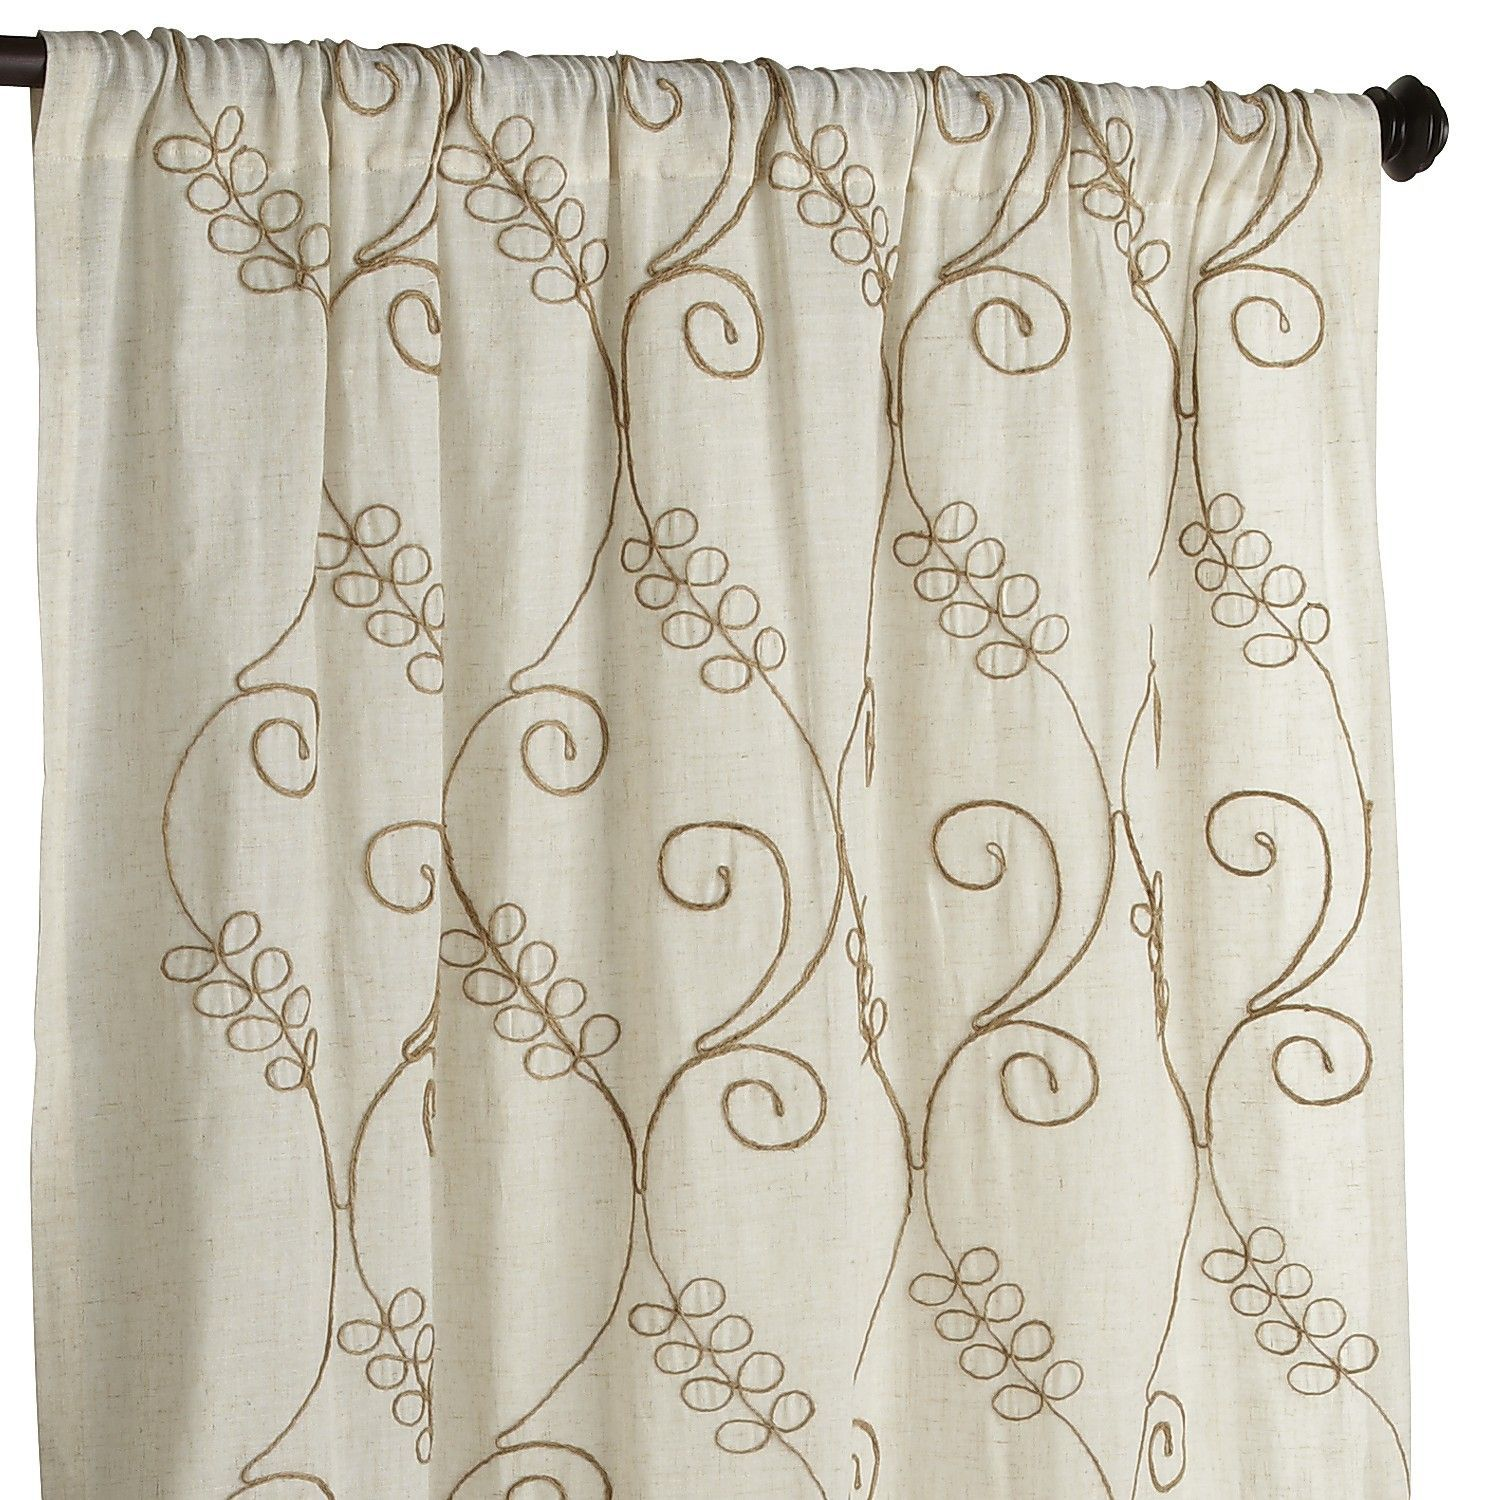 Embroidered Jute Curtain Pier 1 Imports I Call It Home